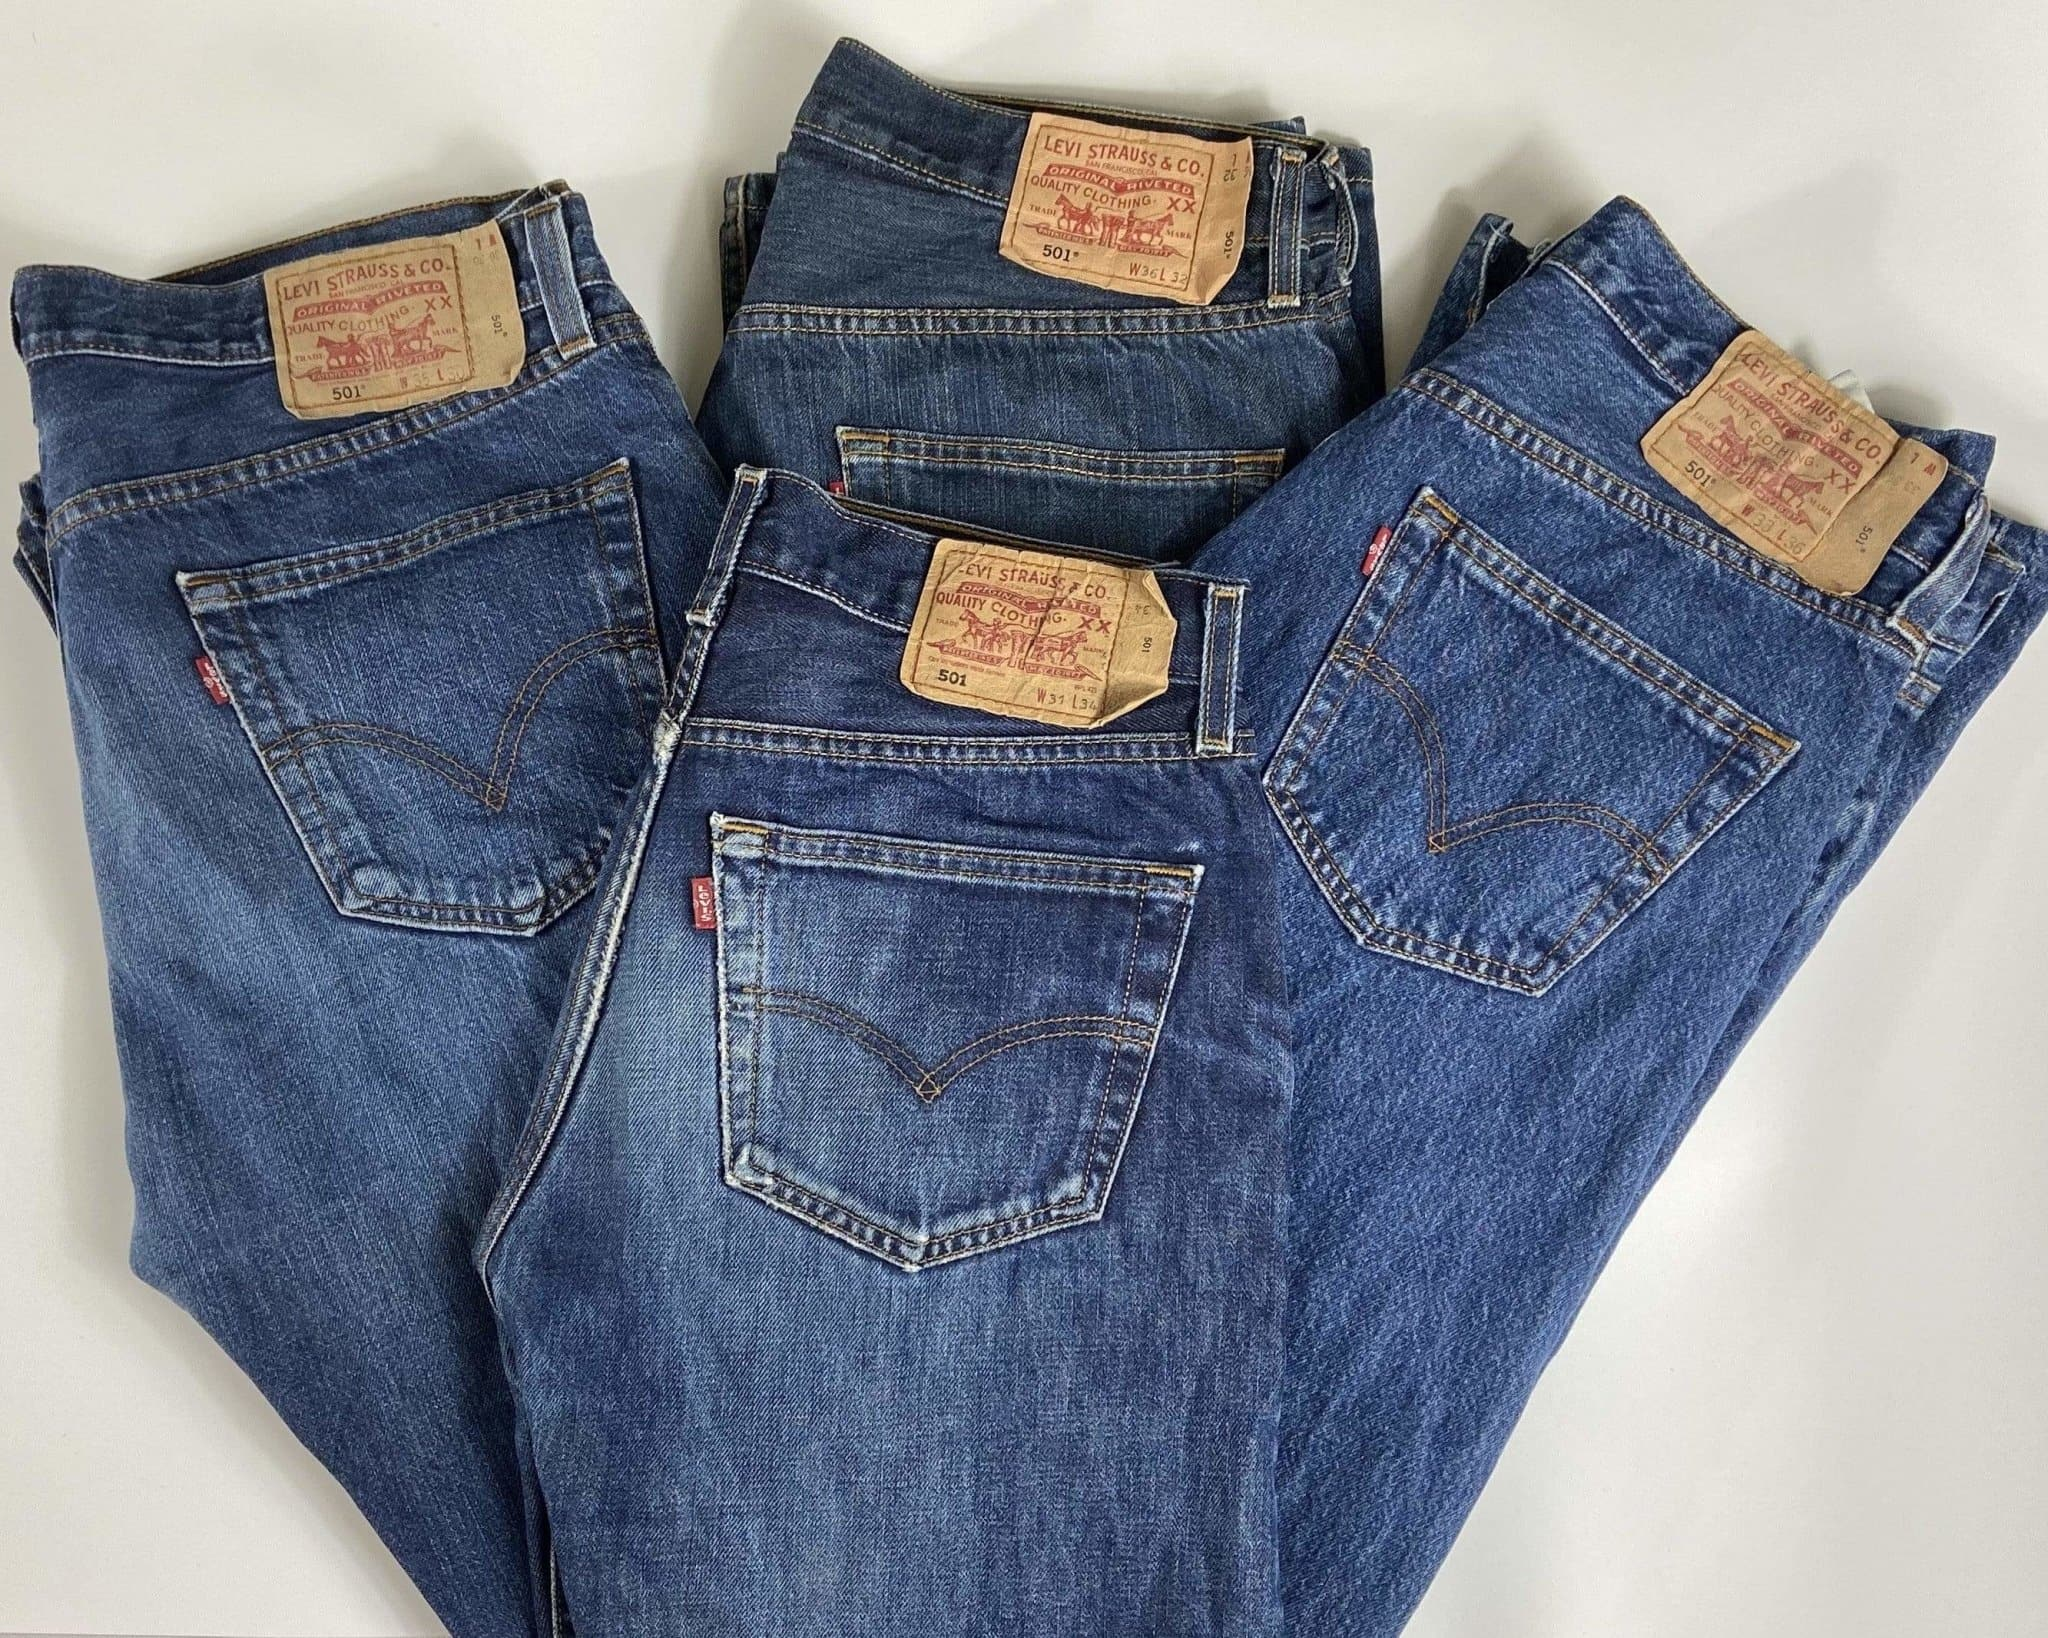 Vintage Levi's Classic 501 Jeans W31 L32 (DHLB4) - Discounted Deals UK